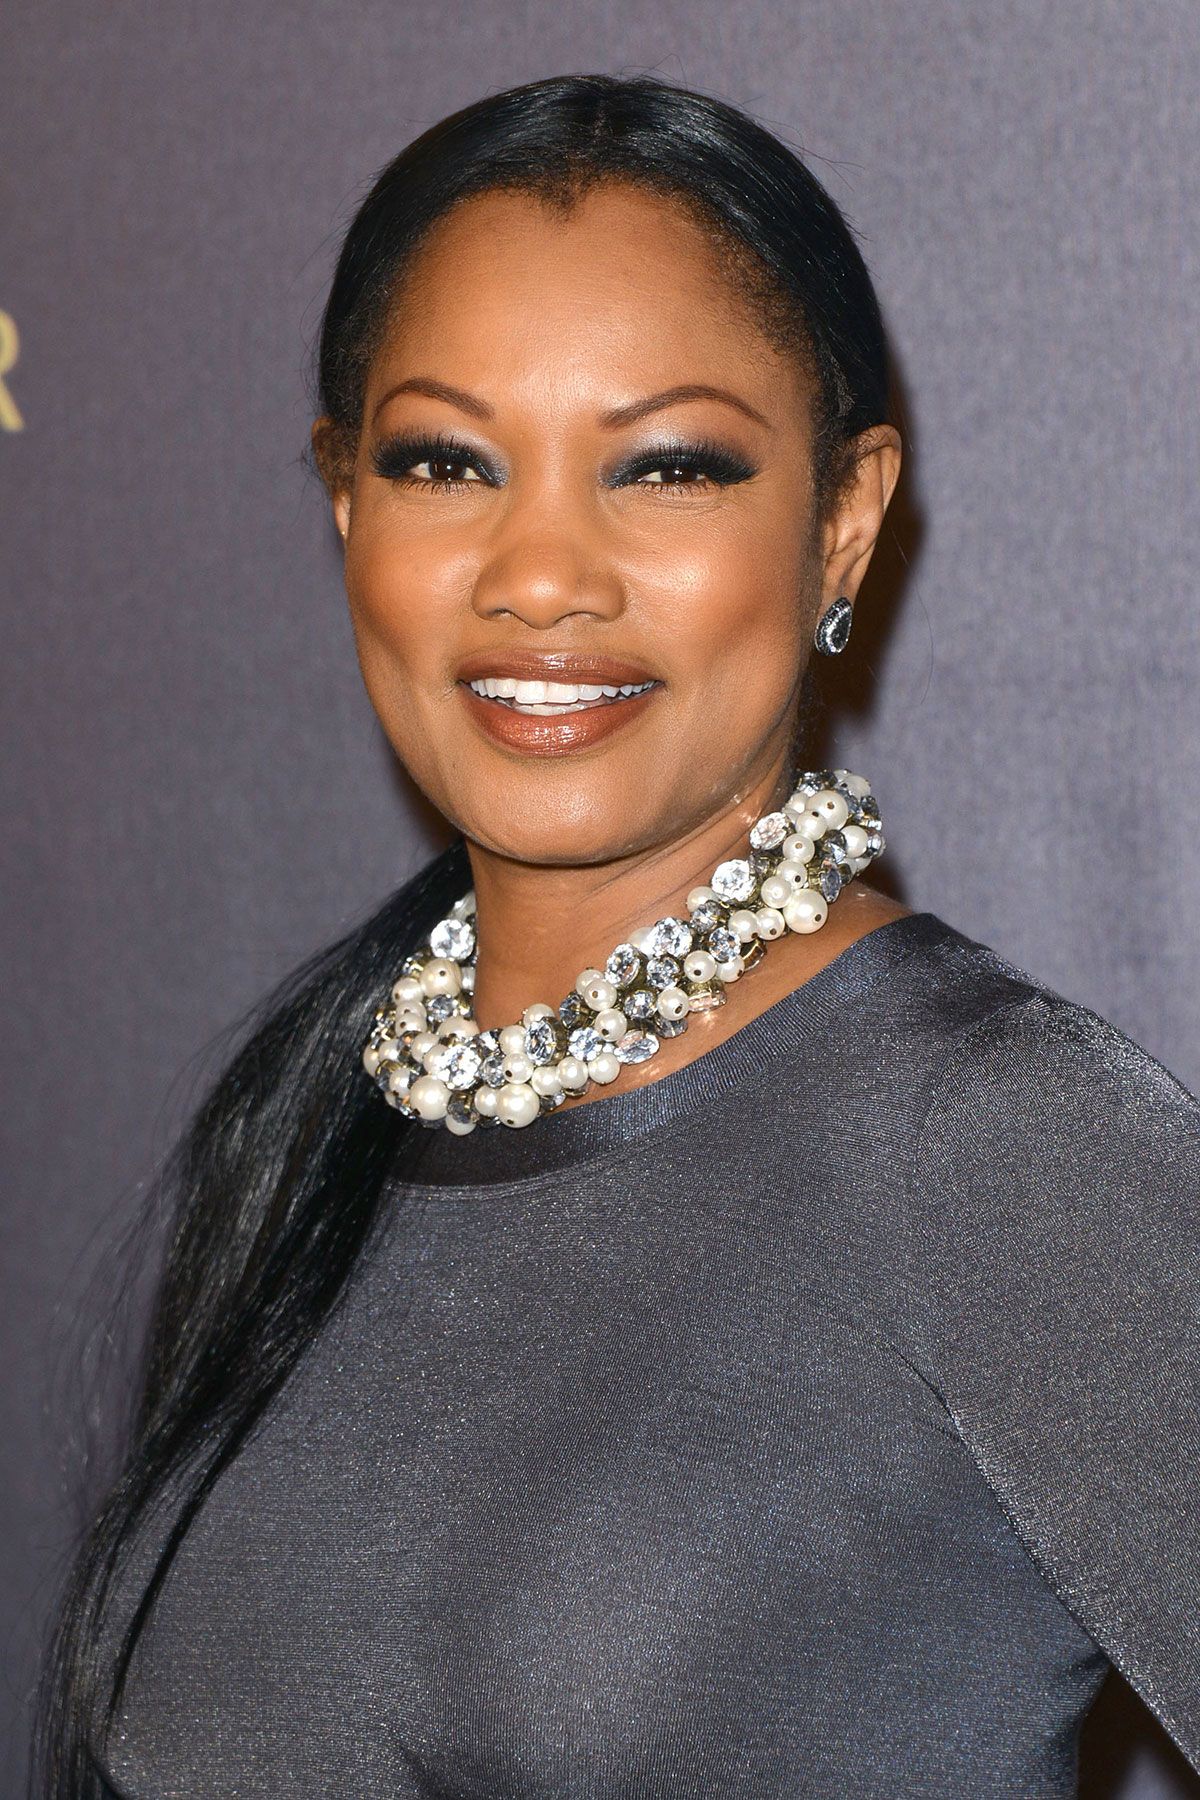 garcelle beauvais 2015garcelle beauvais bad company, garcelle beauvais instagram, garcelle beauvais net worth, garcelle beauvais twins, garcelle beauvais husband, garcelle beauvais email, garcelle beauvais age, garcelle beauvais 2015, garcelle beauvais sons, garcelle beauvais ex husband, garcelle beauvais divorce, garcelle beauvais family